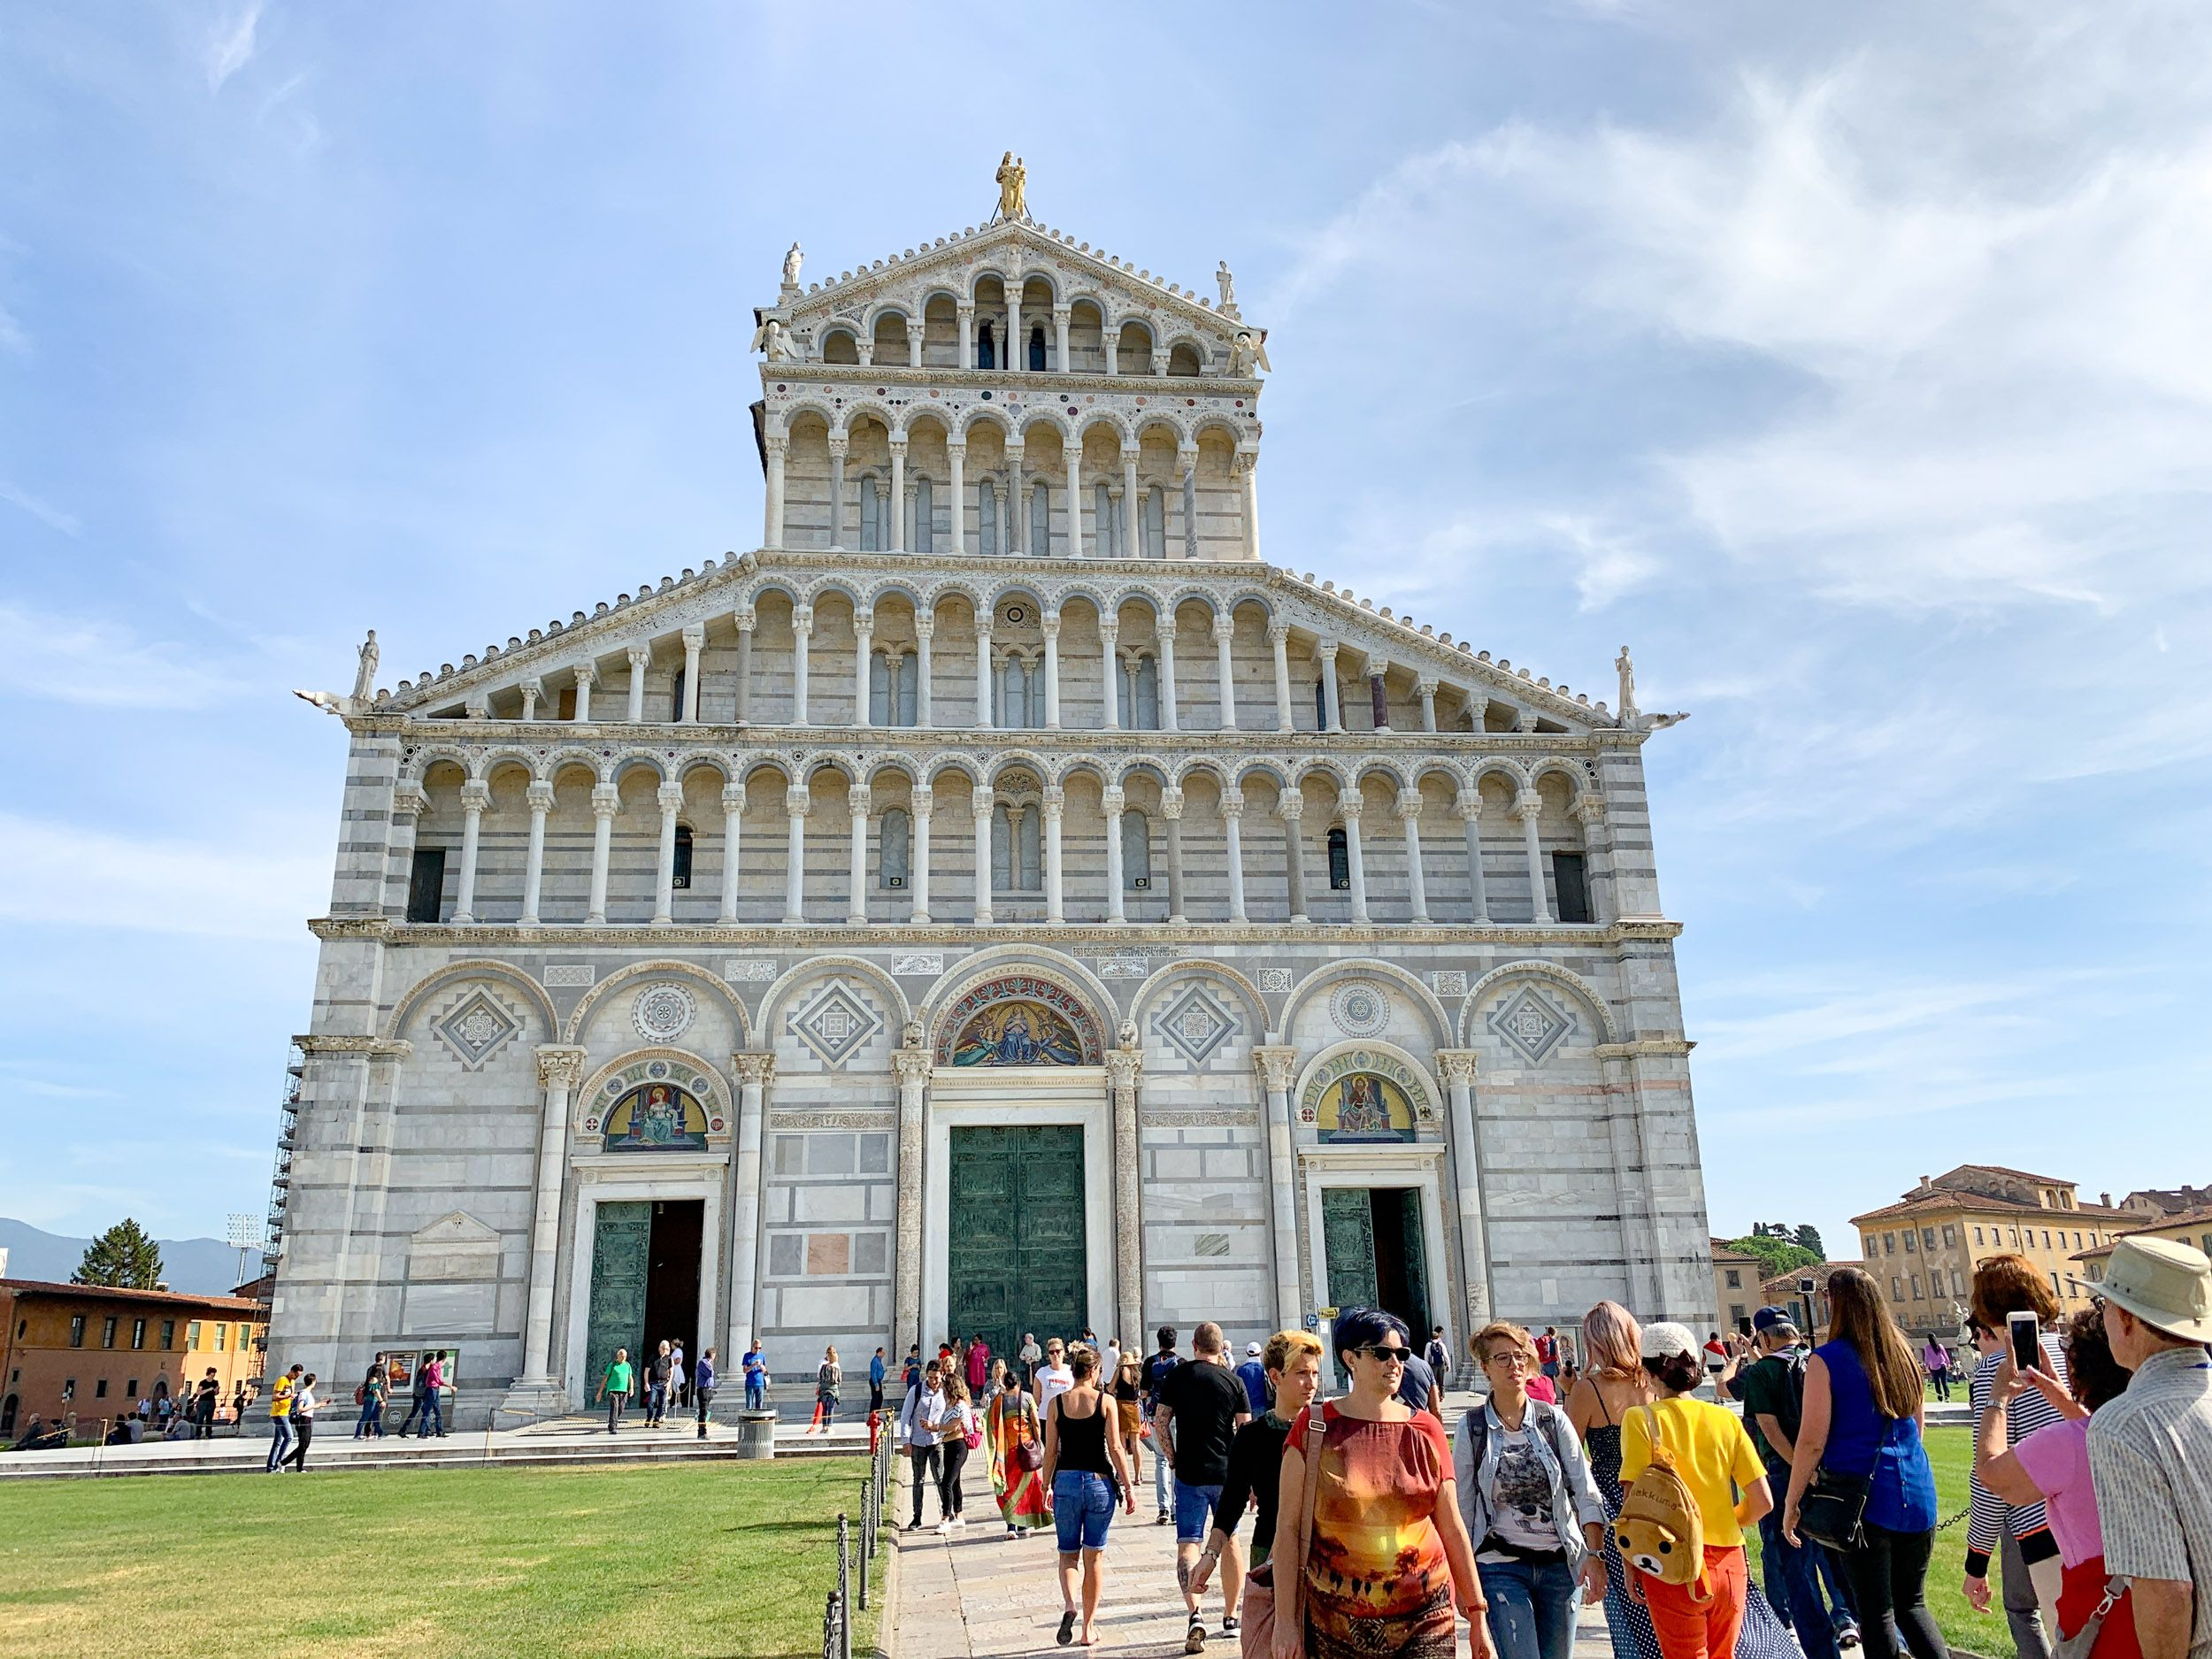 The facade of Pisa Cathedral